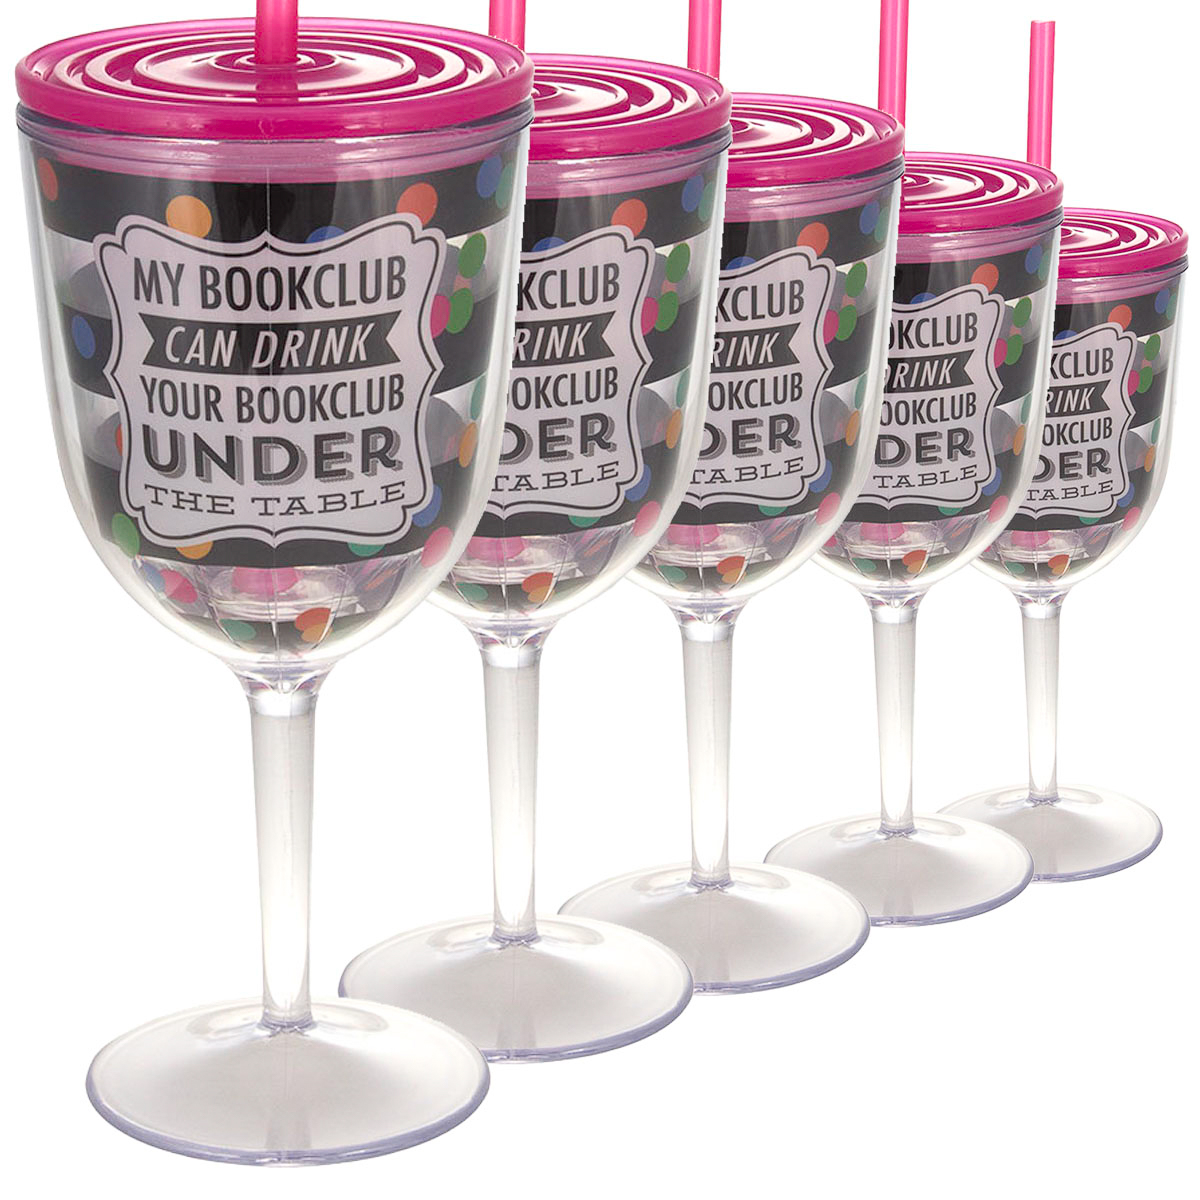 Set of 6 Wine Glasses 13oz With Lids & Straws Double Wall Insulated Funny Books Quote Reusable Acrylic